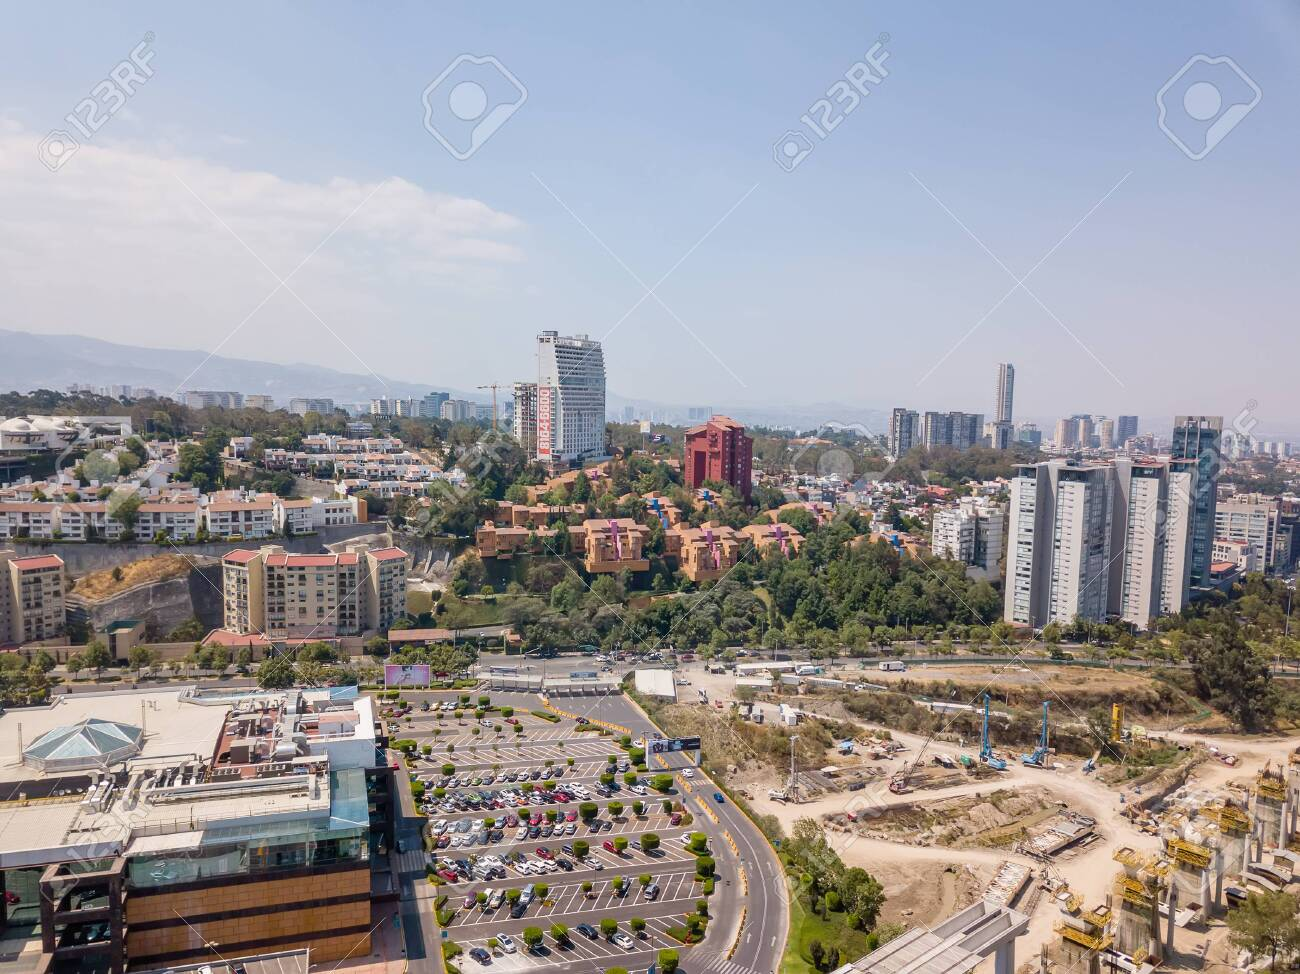 Mexico City Santa Fe Panoramic View Stock Photo Picture And Royalty Free Image Image 137200417